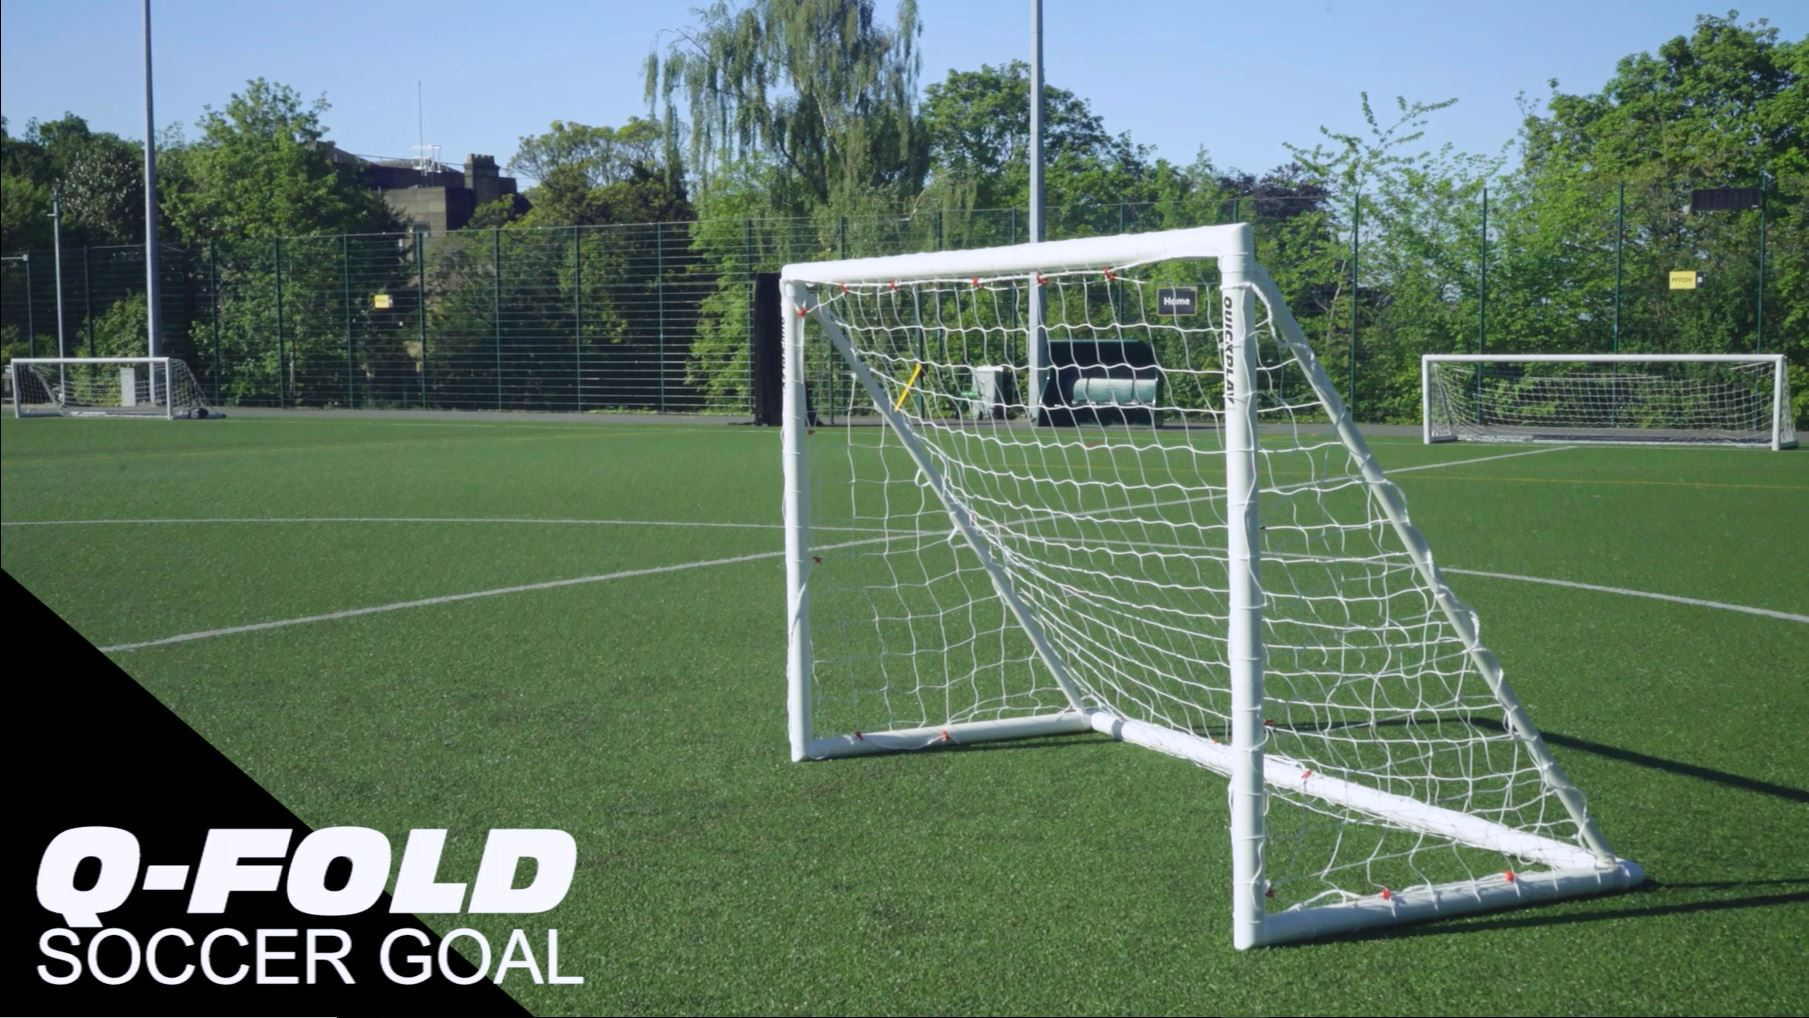 f4229a37b QuickPlay Q-Fold | The 30 Second Folding Soccer Goal for Backyard [Single  Goal] The Best Weatherproof Soccer Net for Kids and Adults – 2YR Warranty